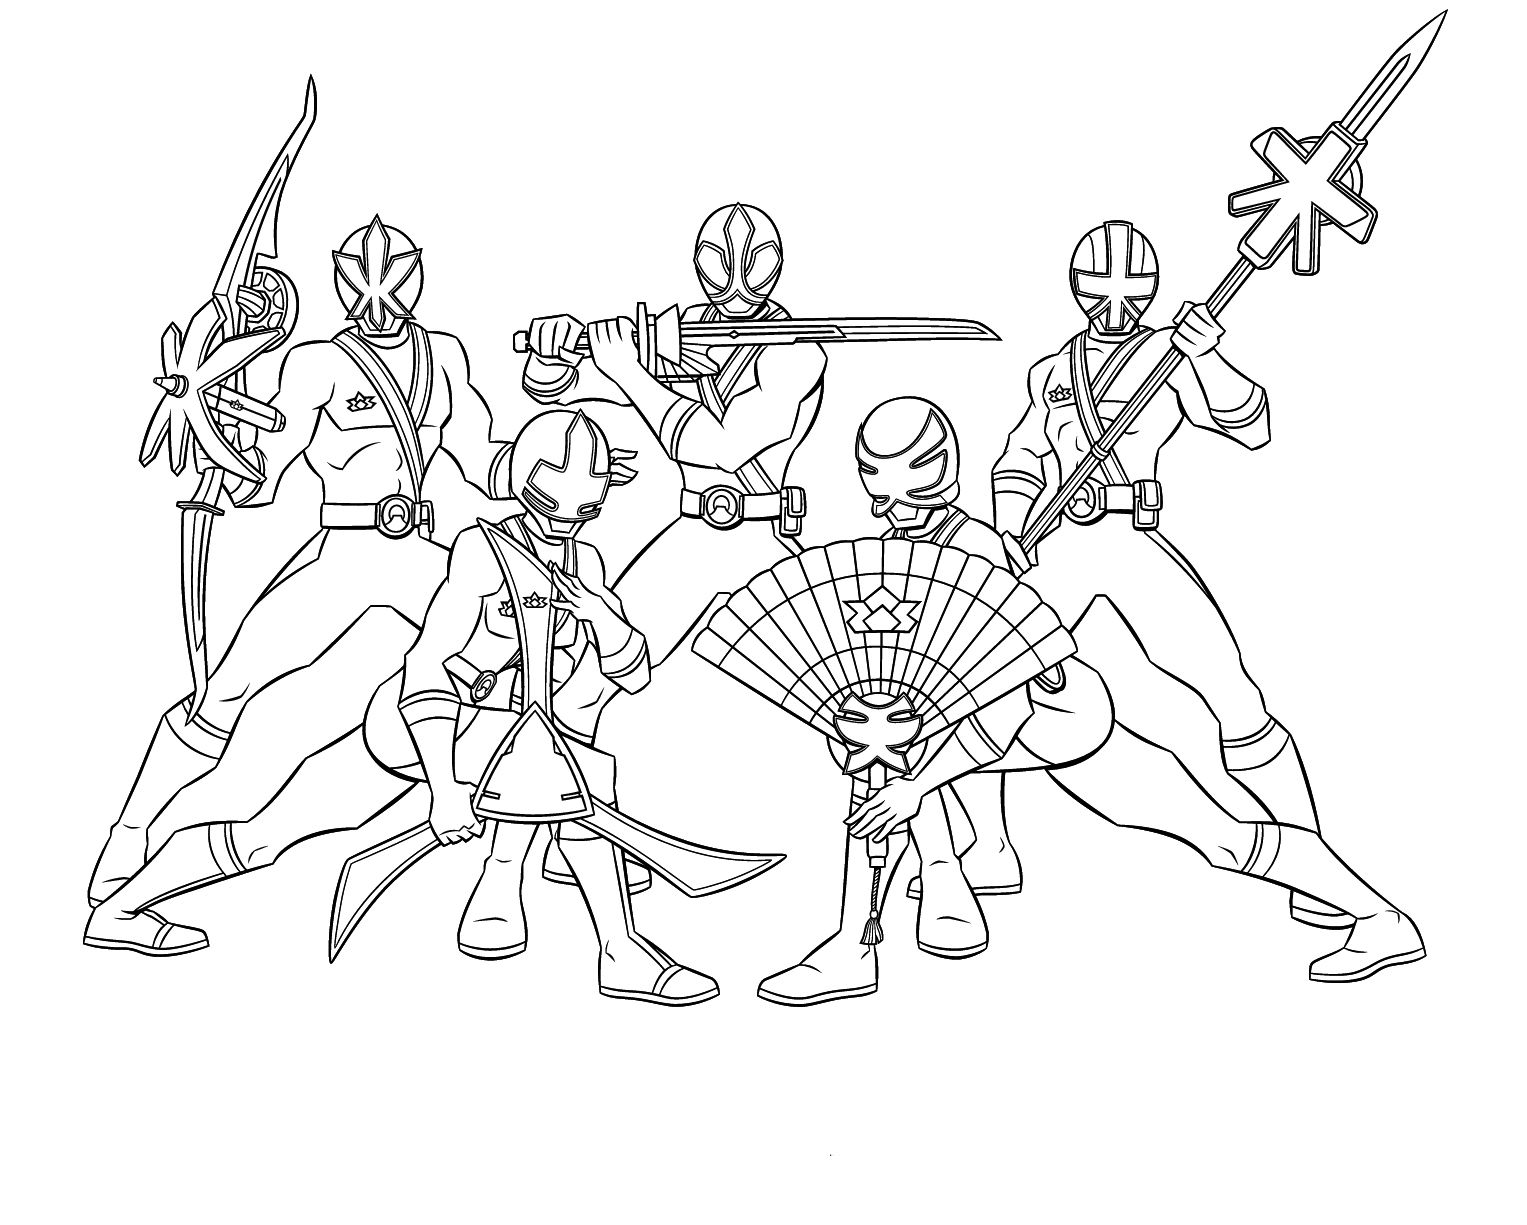 Team Power Ranger Samurai Coloring Pages | For Henry | Pinterest ...